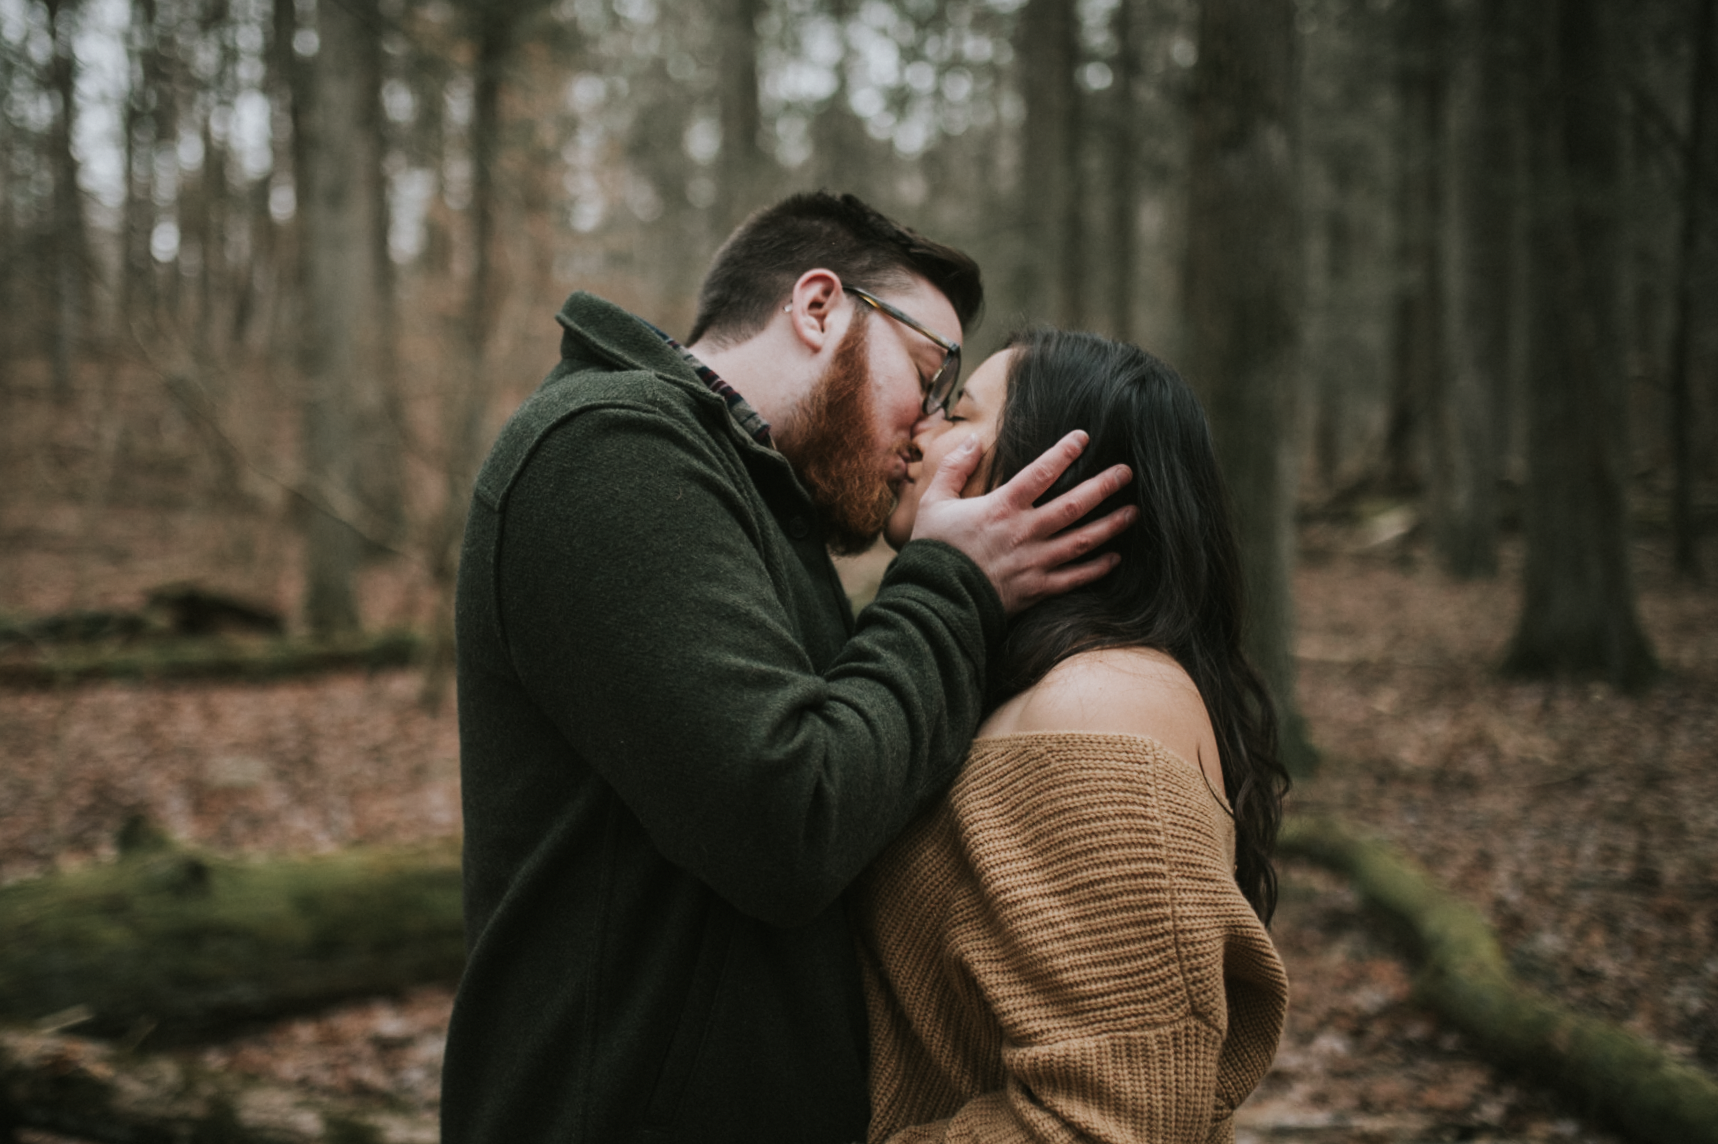 matt-natalia-winter-woods-engagement-session-pennsylvania-wedding-photographer-17